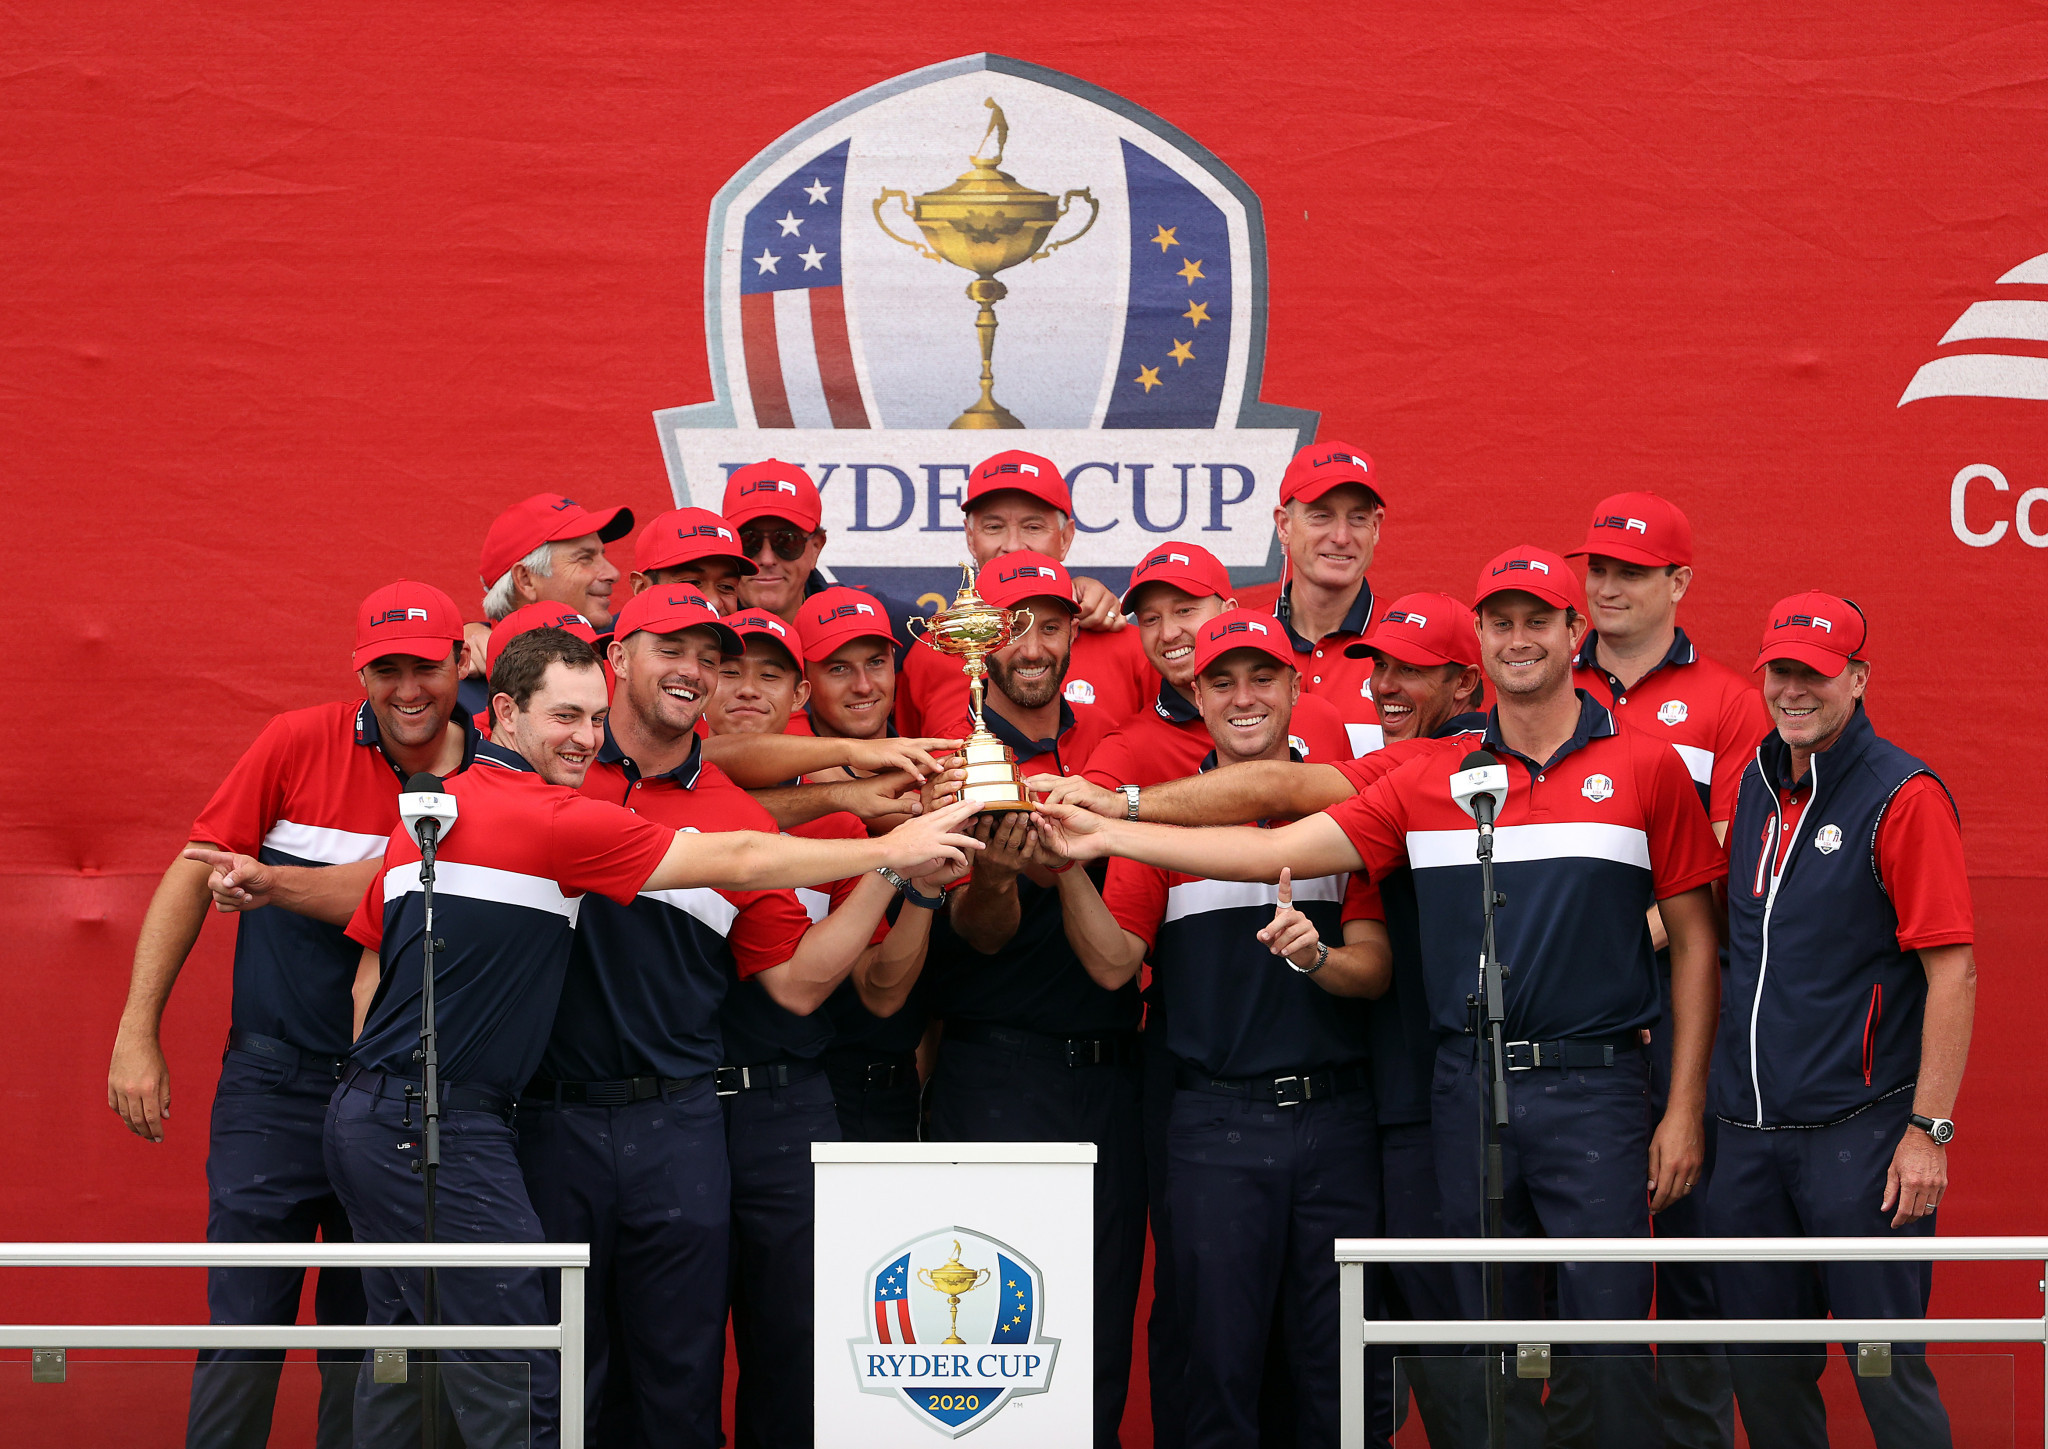 United States regain Ryder Cup in style with convincing victory over Europe